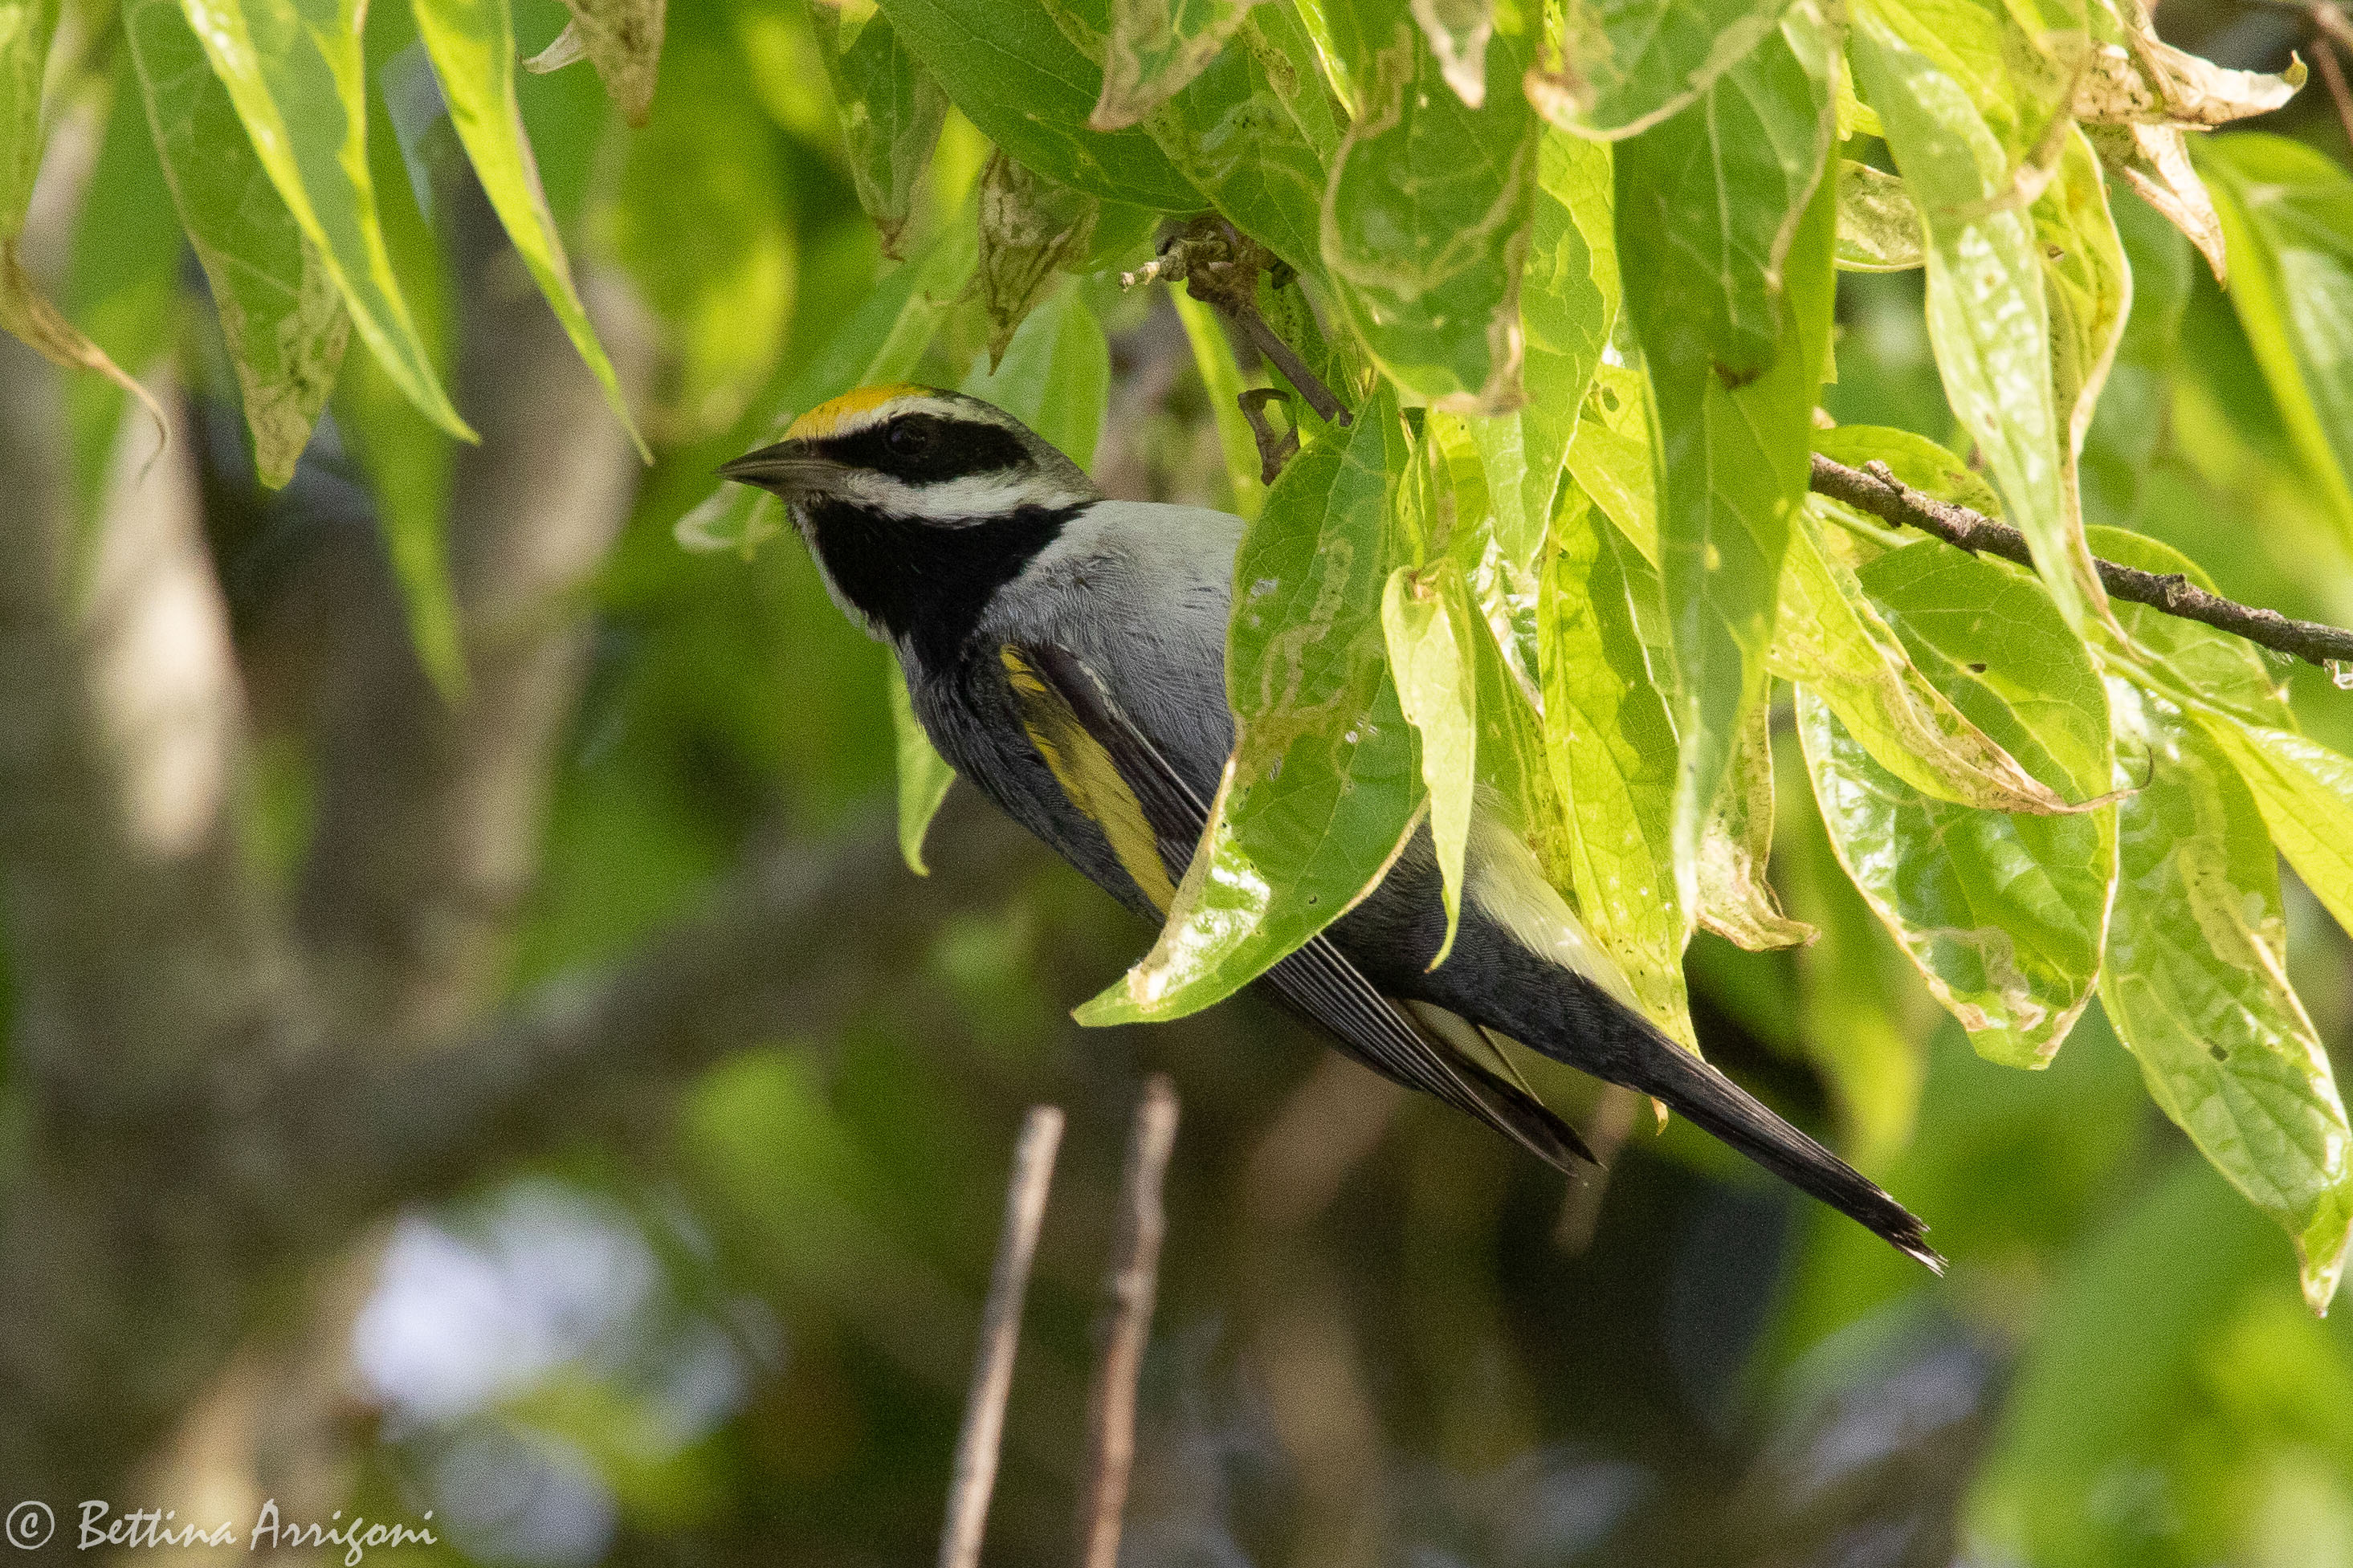 golden-winged_warbler_male_sabine_woods_tx_2018-04-28_06-56-29_28327931988